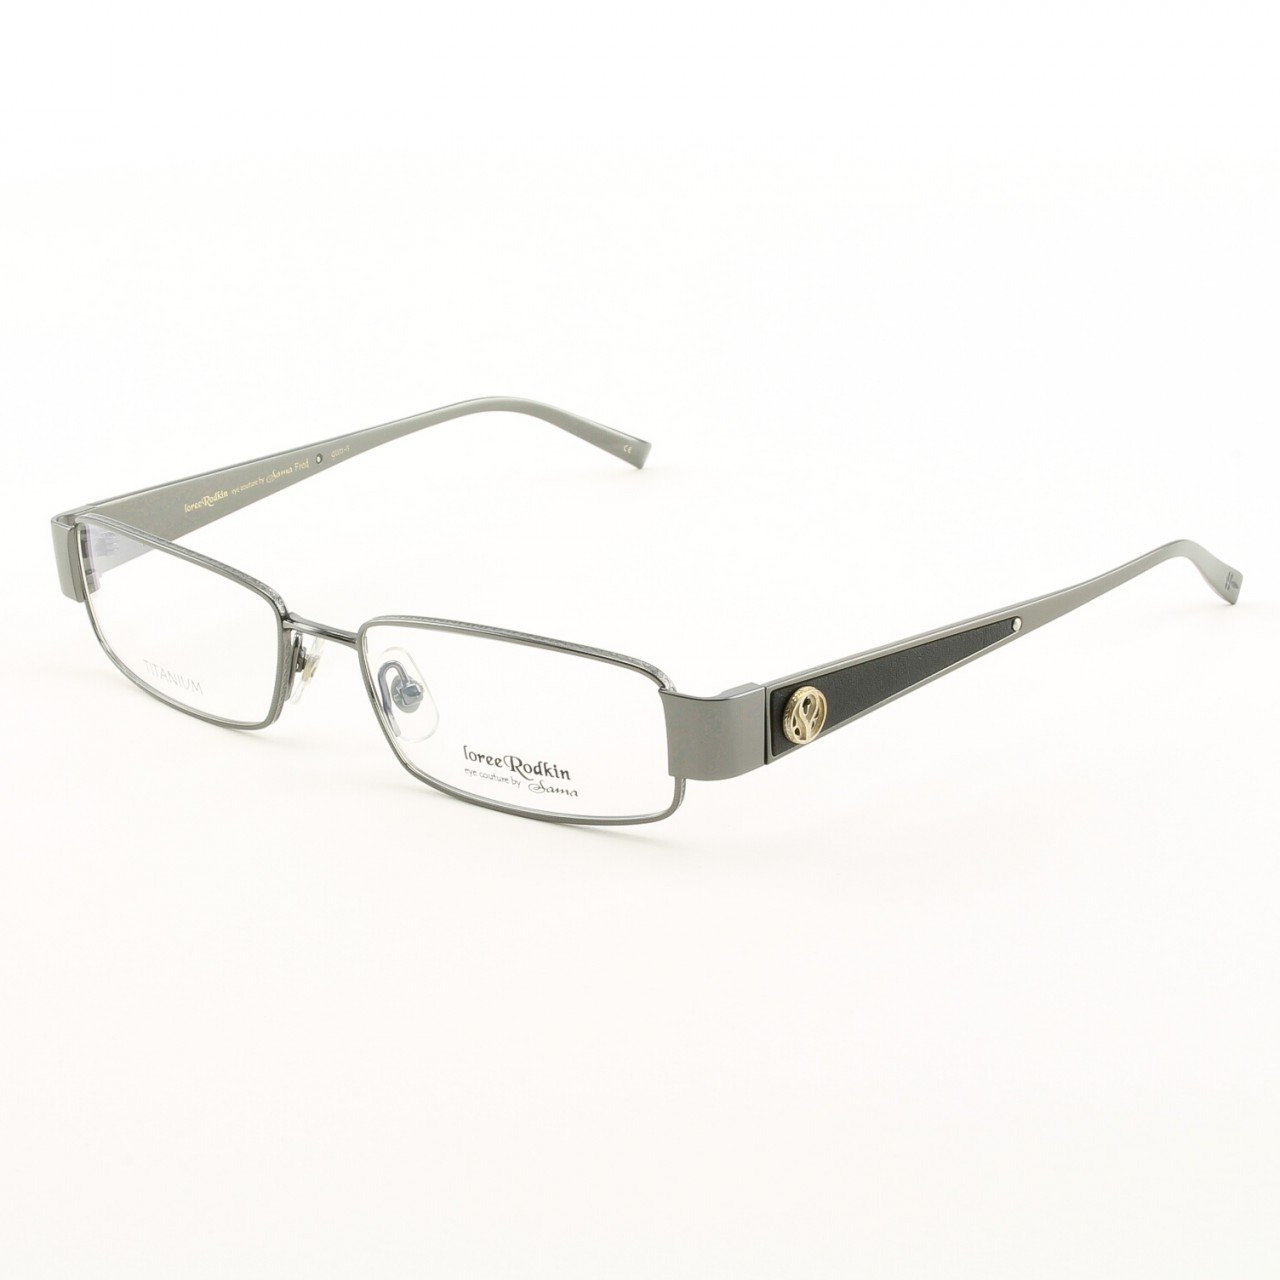 Loree Rodkin Fred Eyeglasses by Sama Col. Gun Metal with Clear Lenses, Leather and Sterling Silver